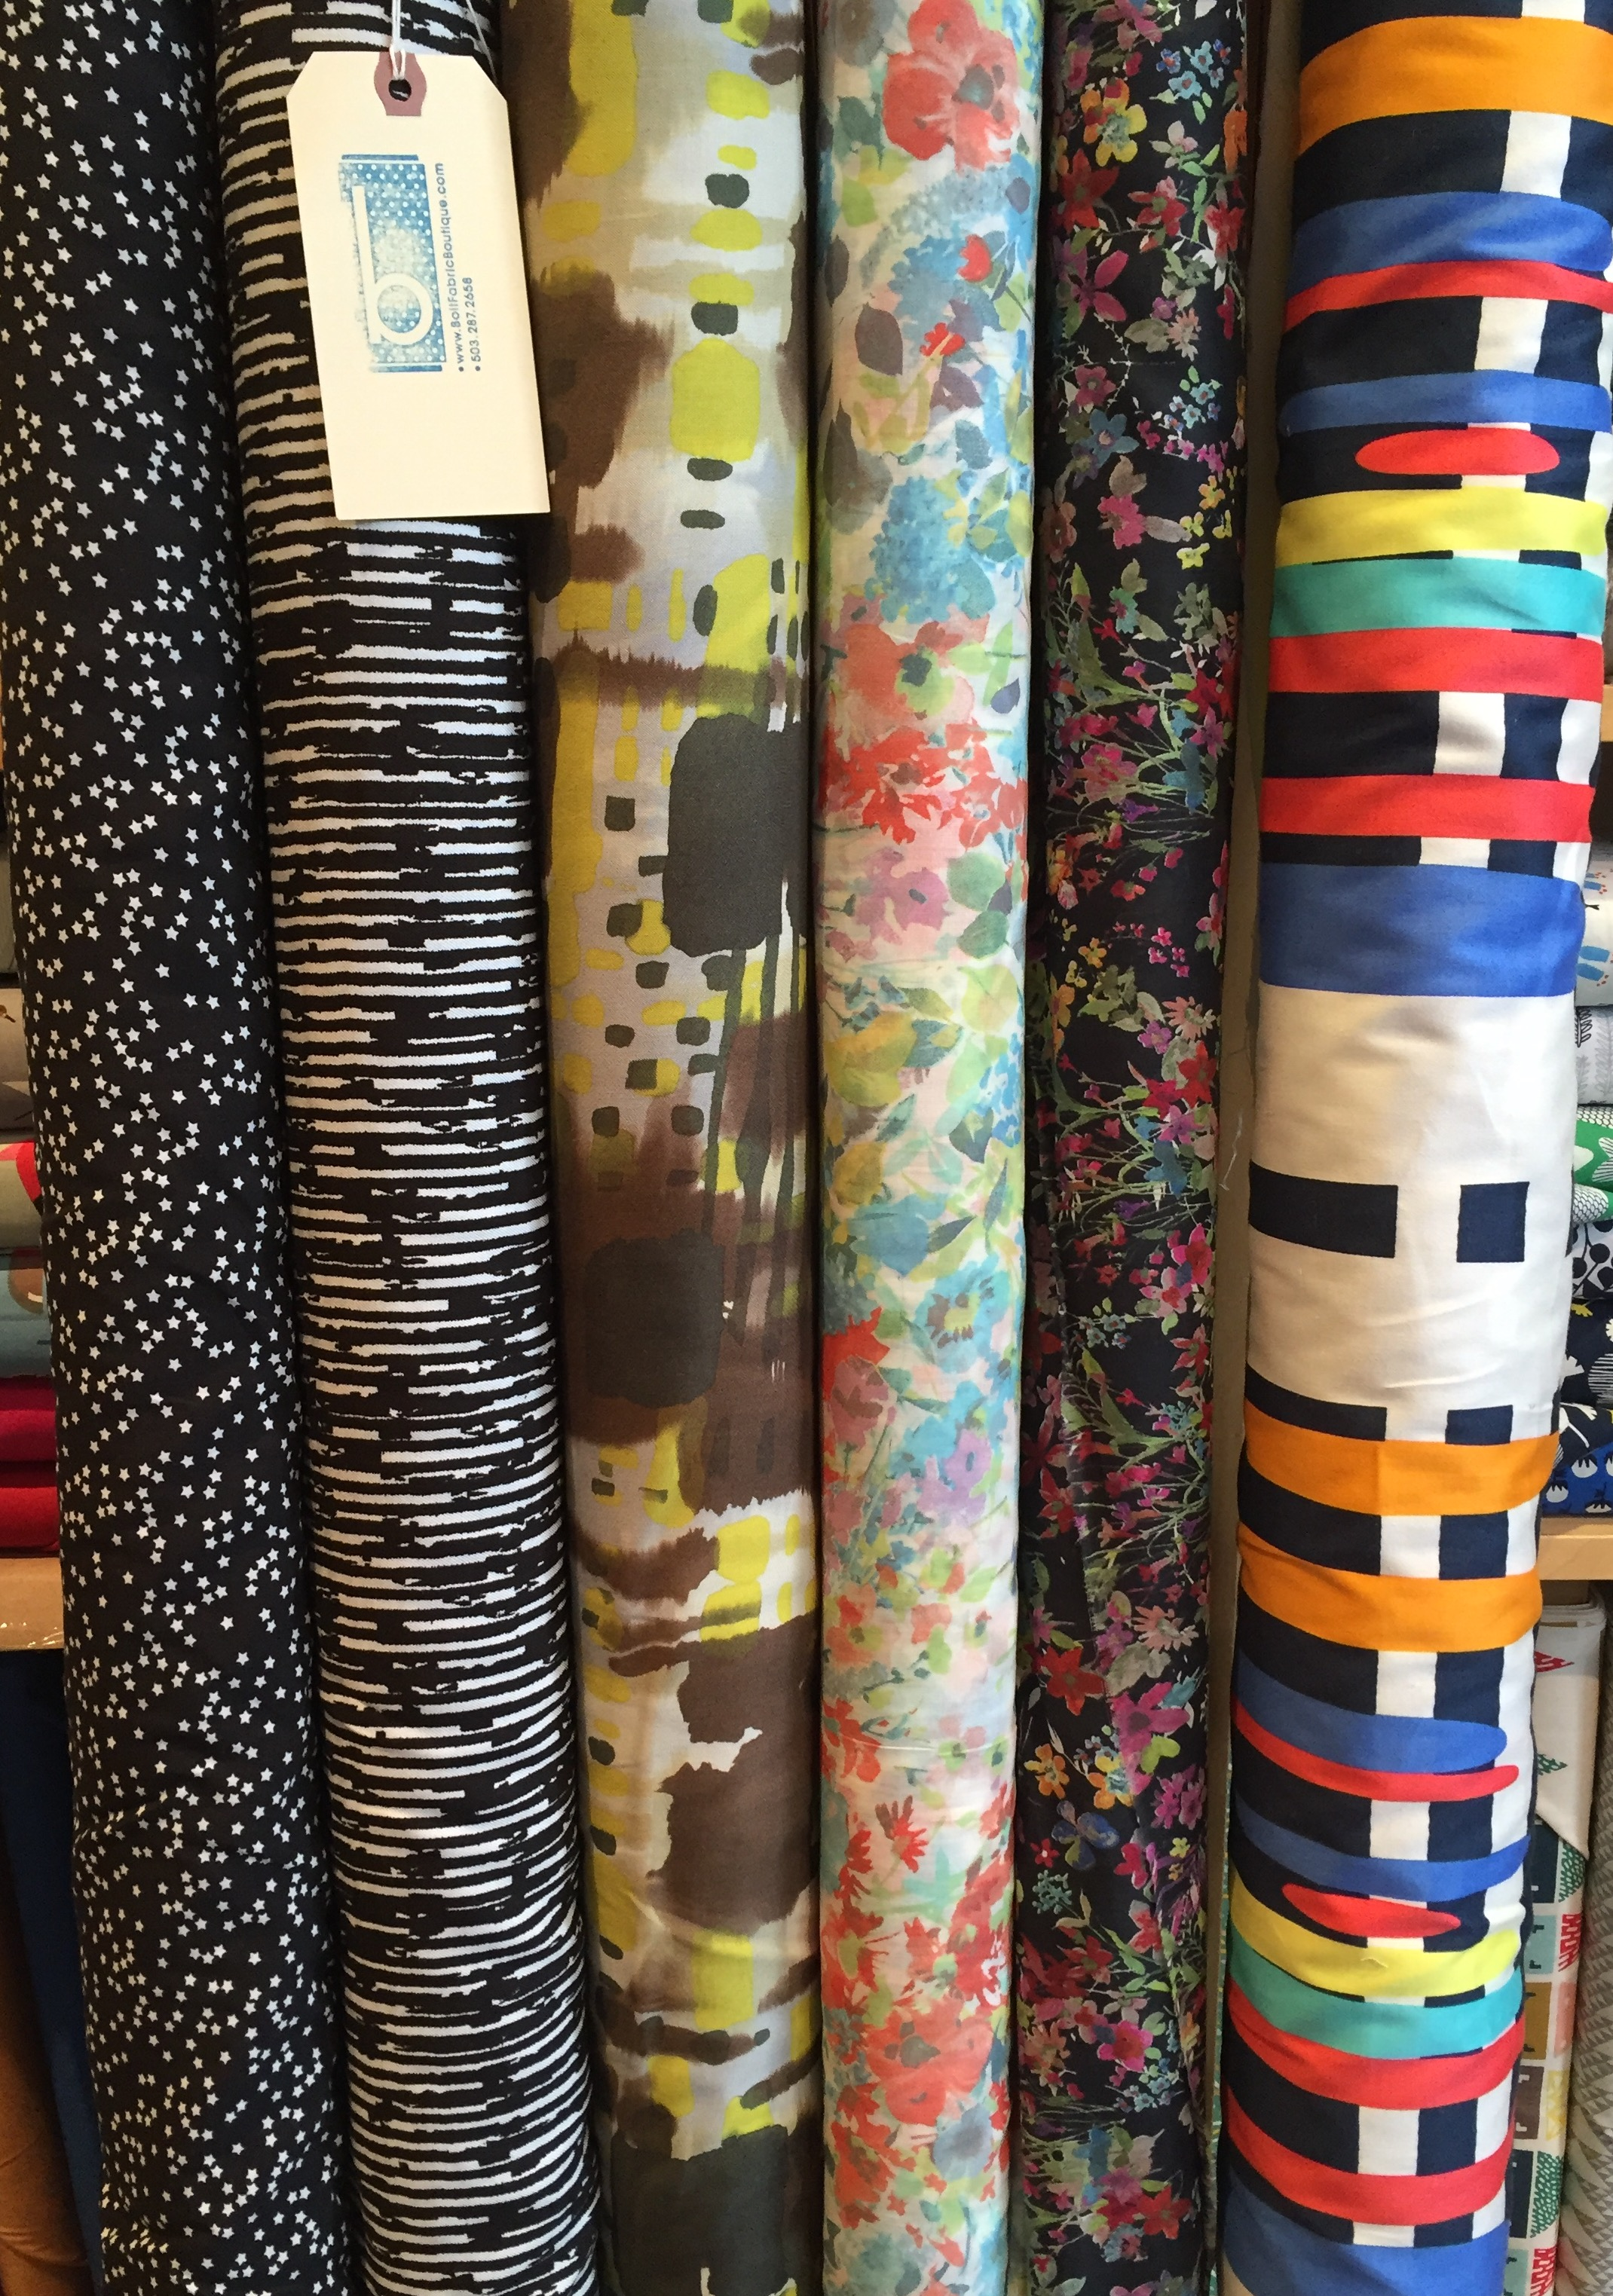 rayon and cotton apparel goods. Oh so lovely!